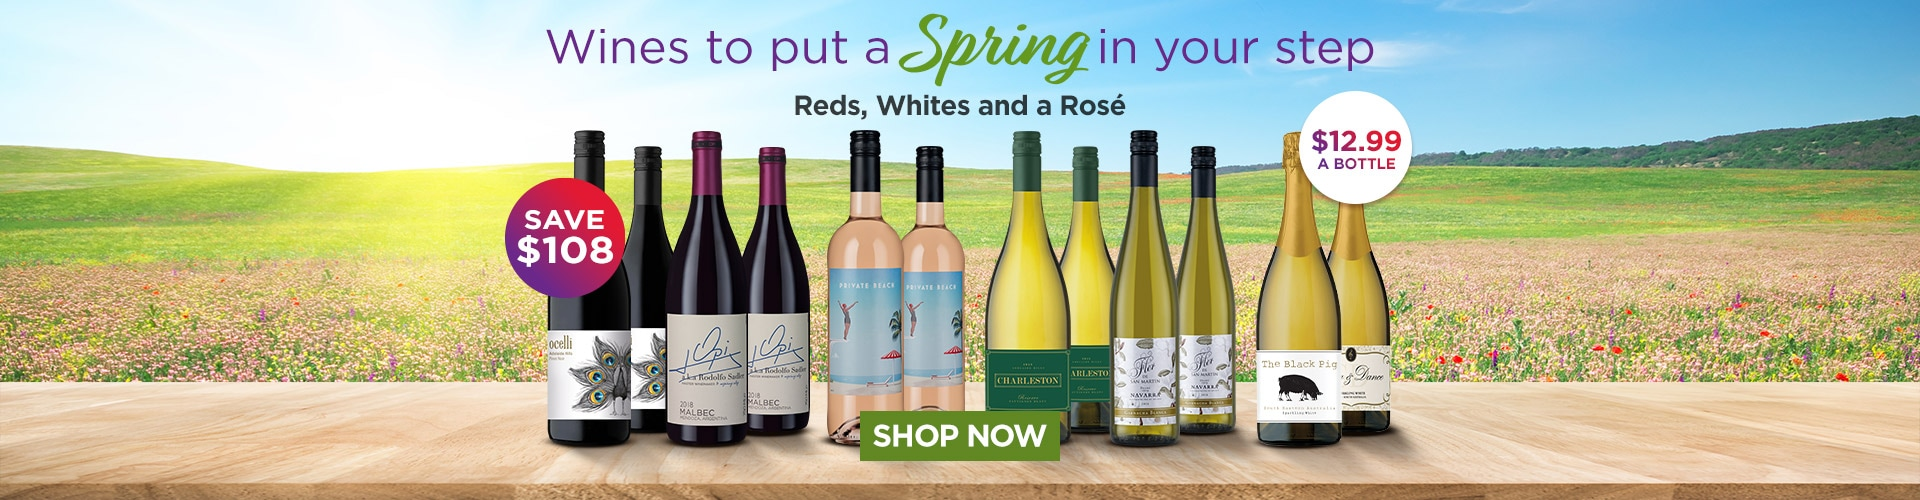 Reds, Whites and a Rosé to put a Spring in your step